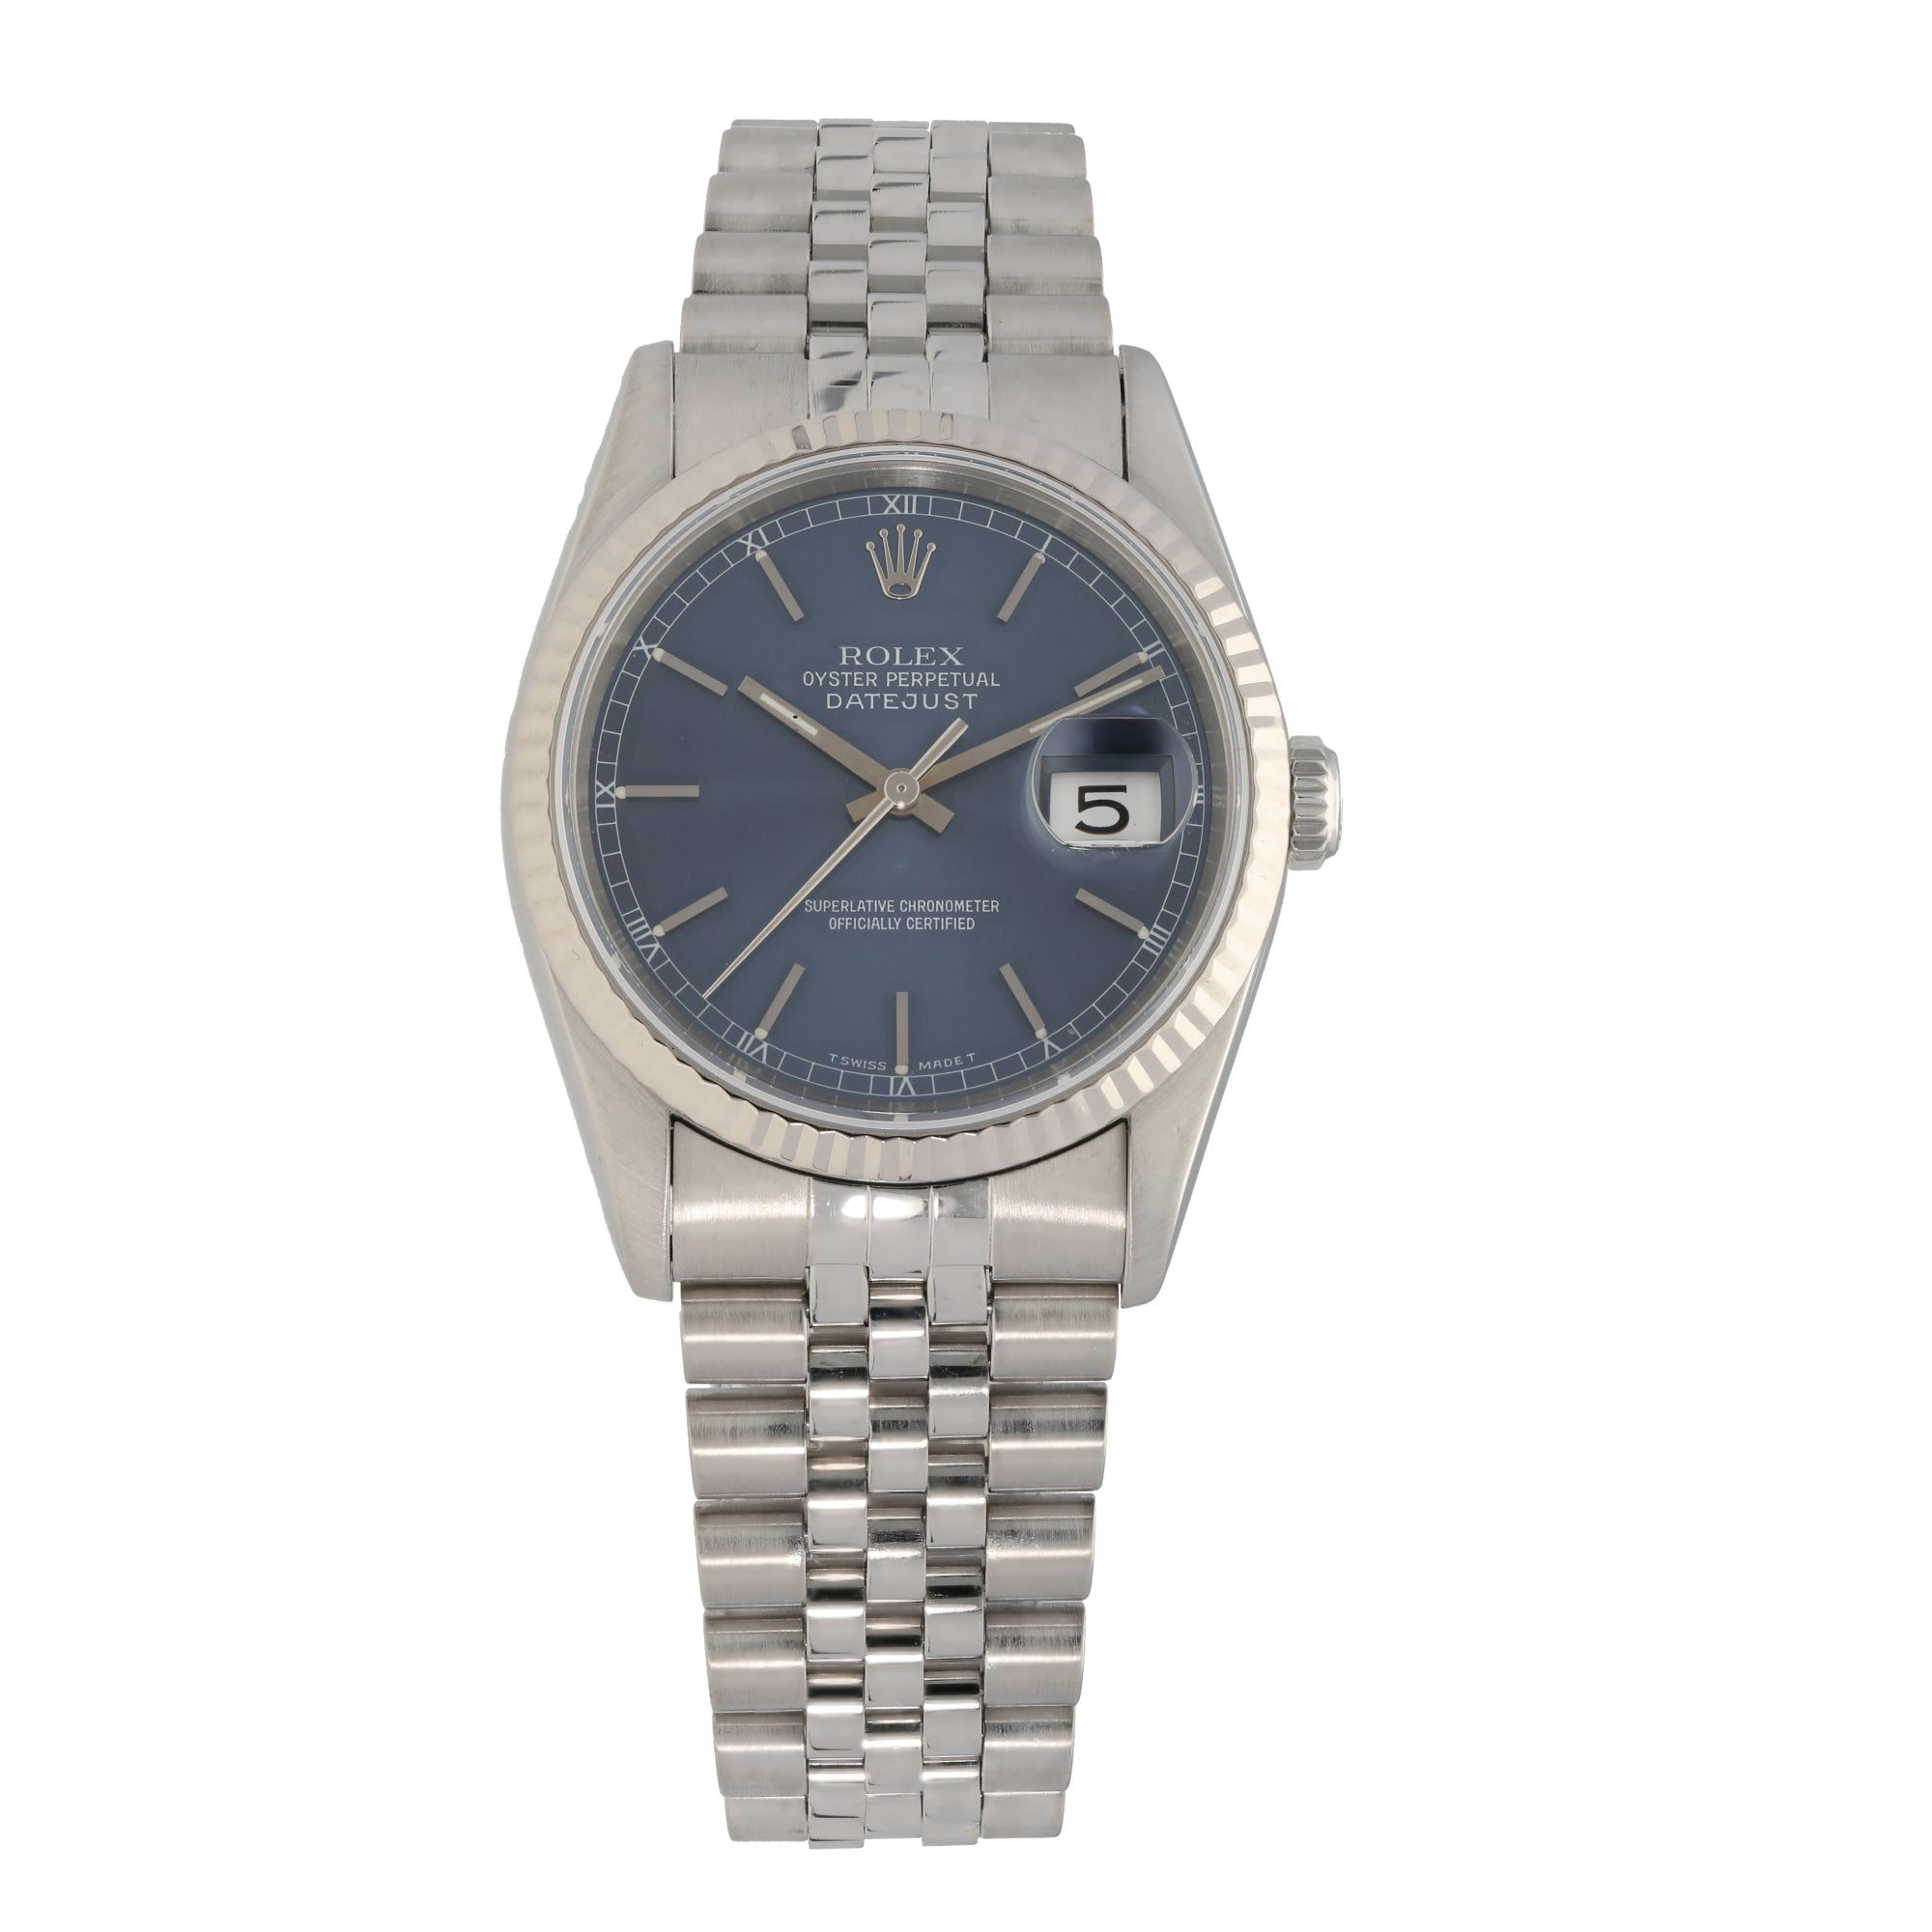 Rolex Datejust 16234 36mm Stainless Steel Mens Watch